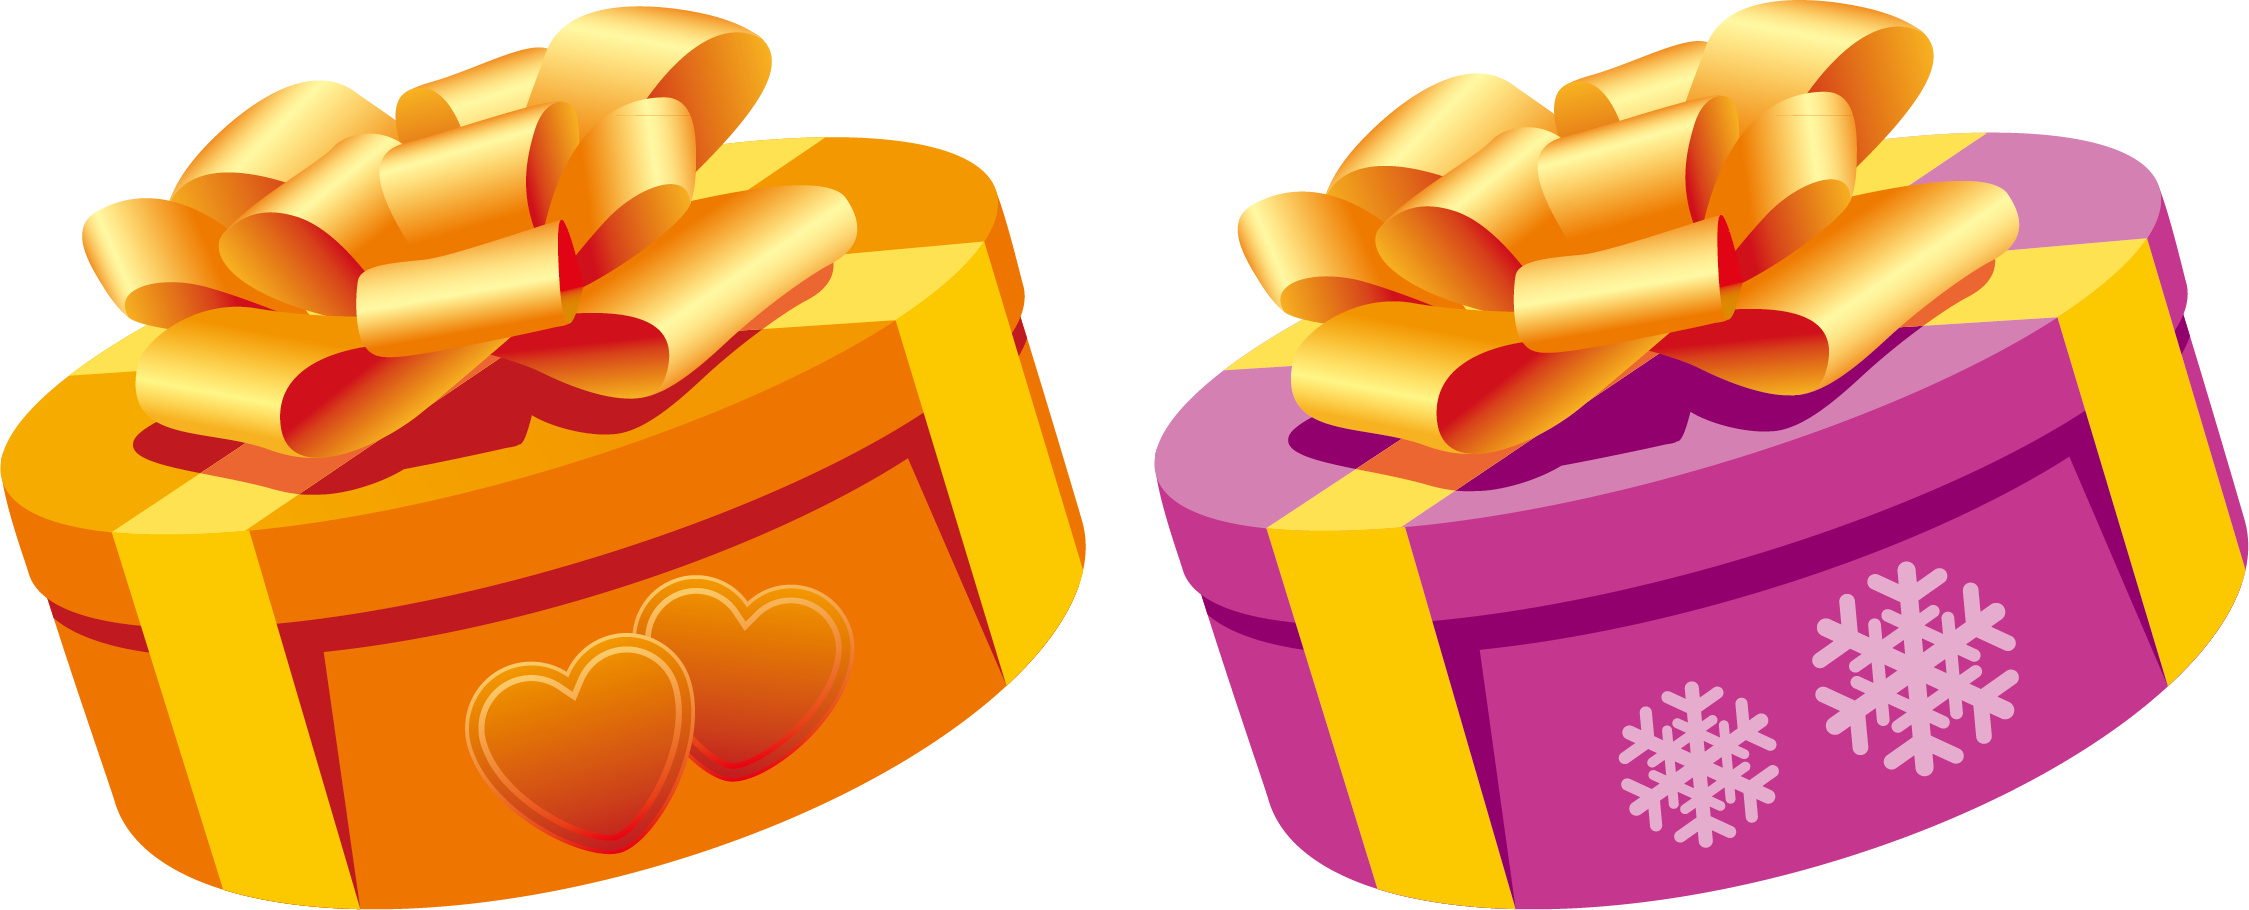 Gifts clipart orange.